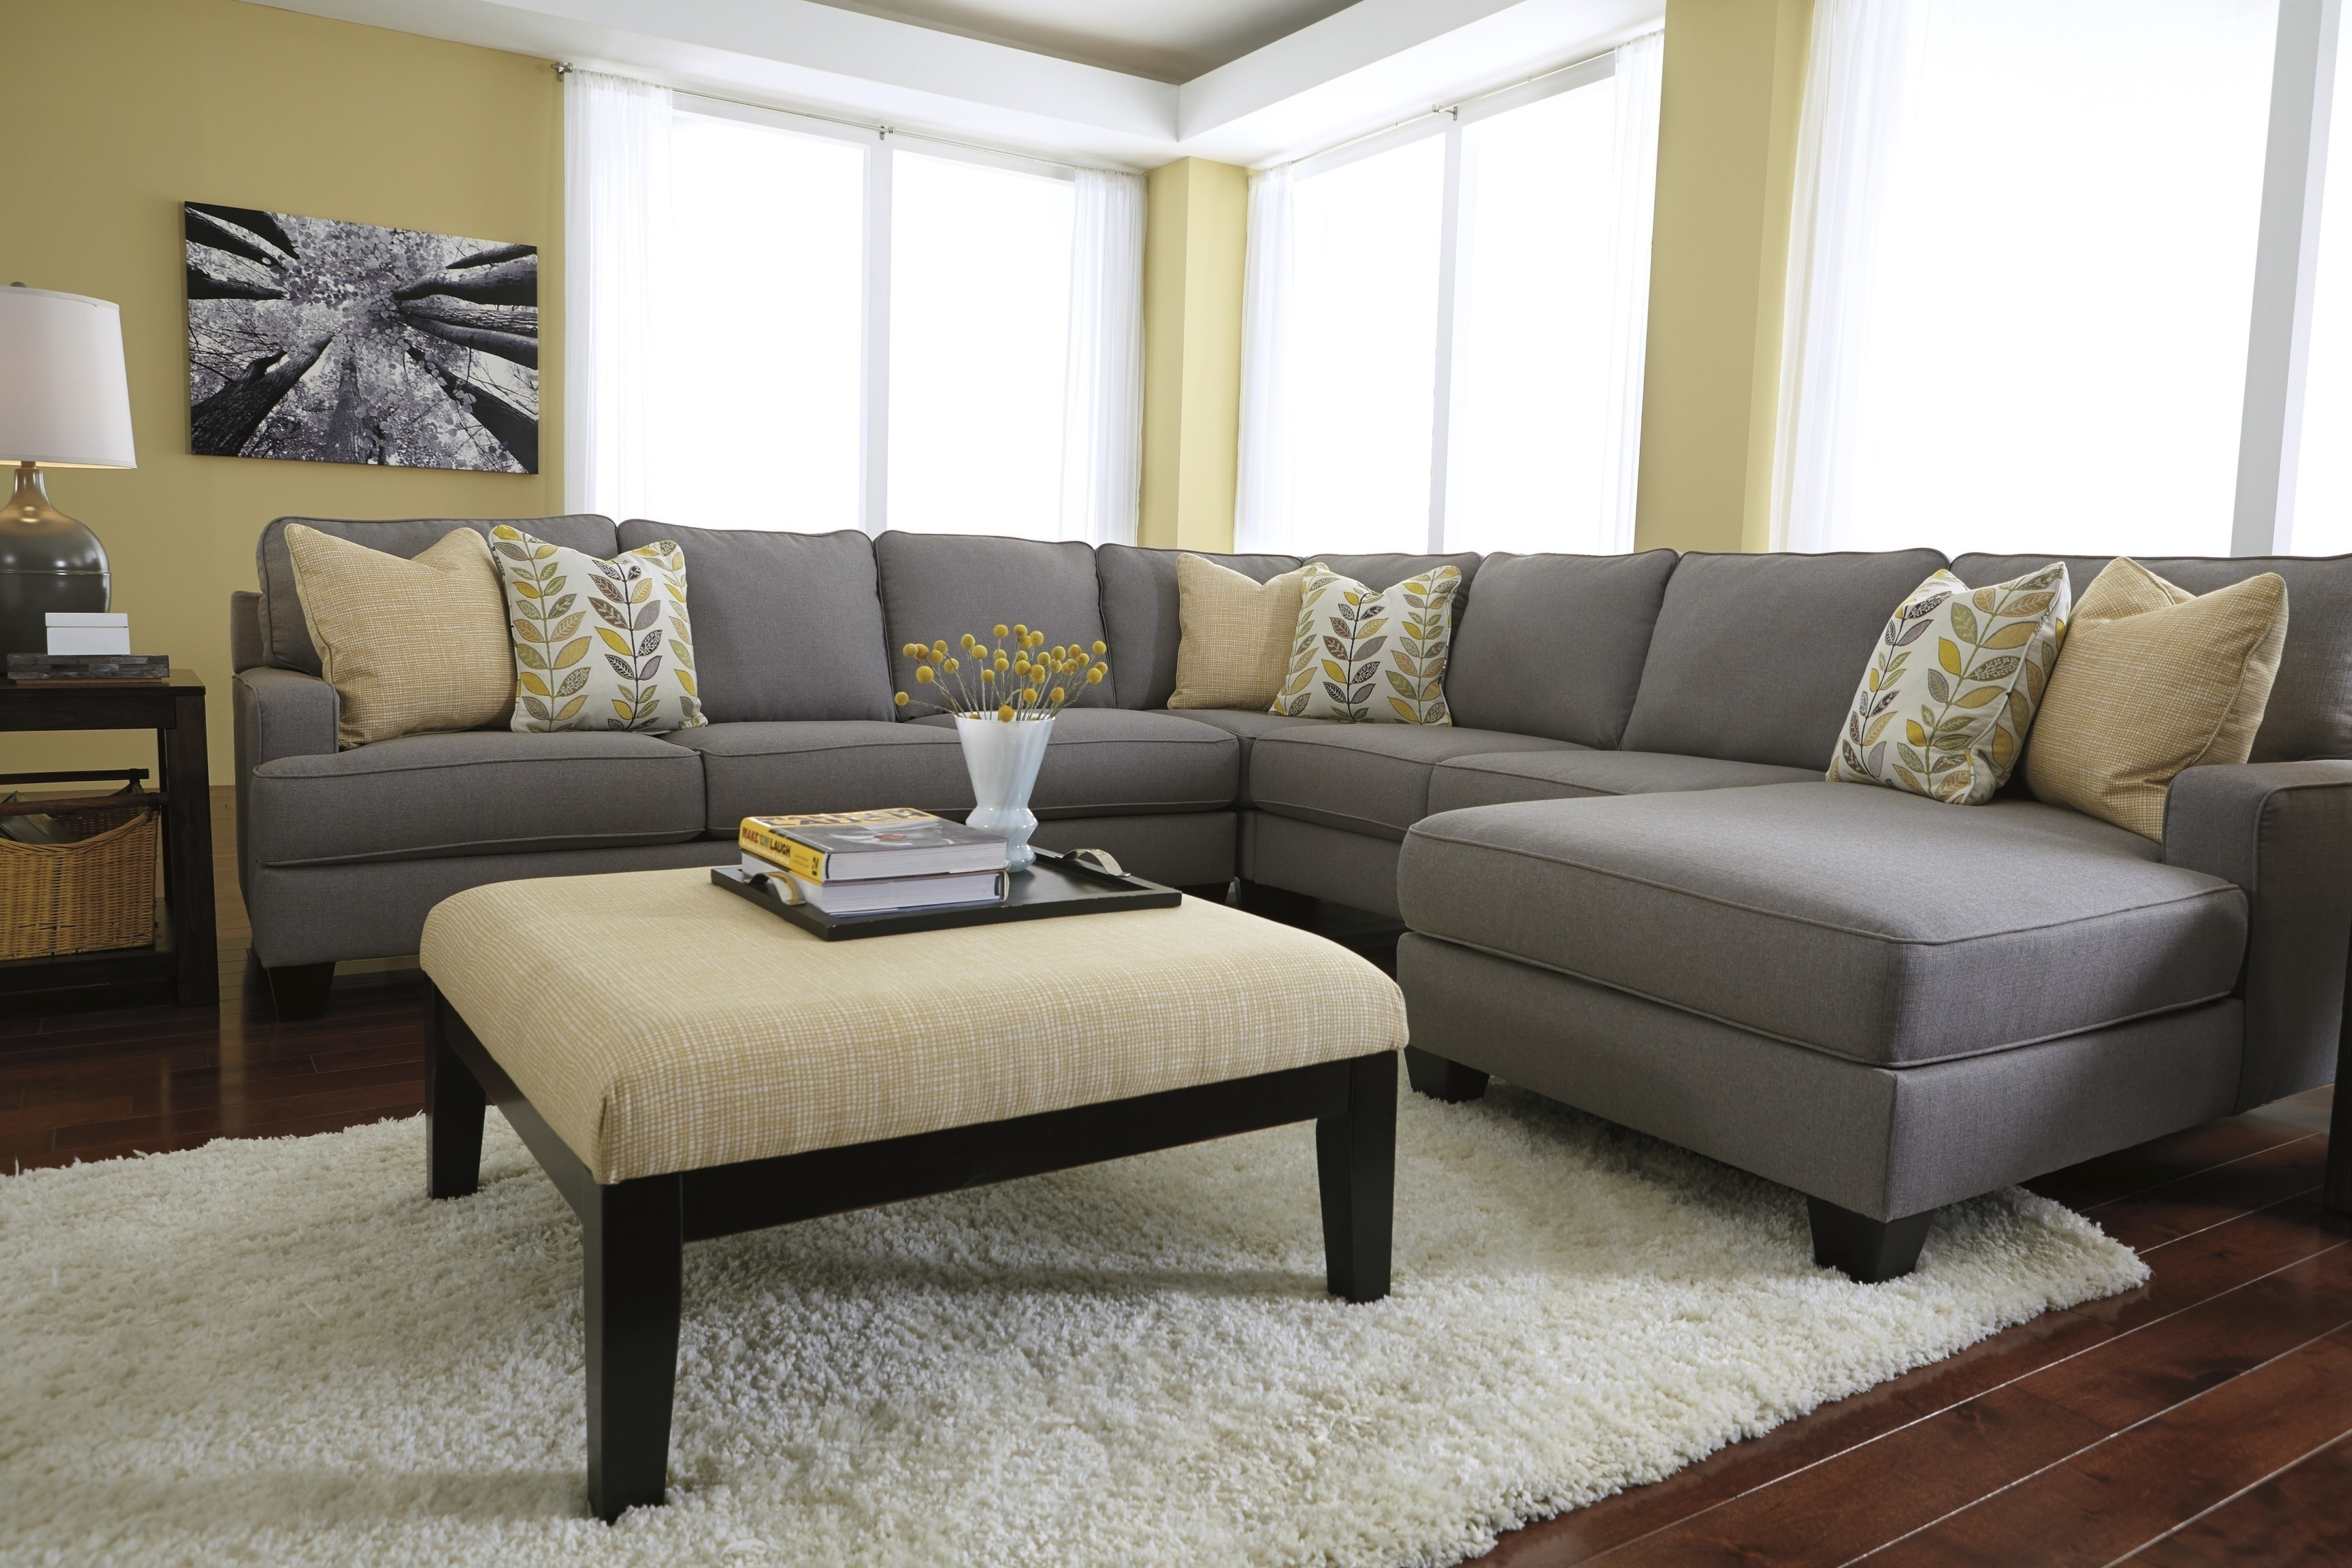 Sectional Sofa : Leonss~1 Sectional With Oversized Ottoman Pertaining To Sectionals With Oversized Ottoman (View 12 of 15)